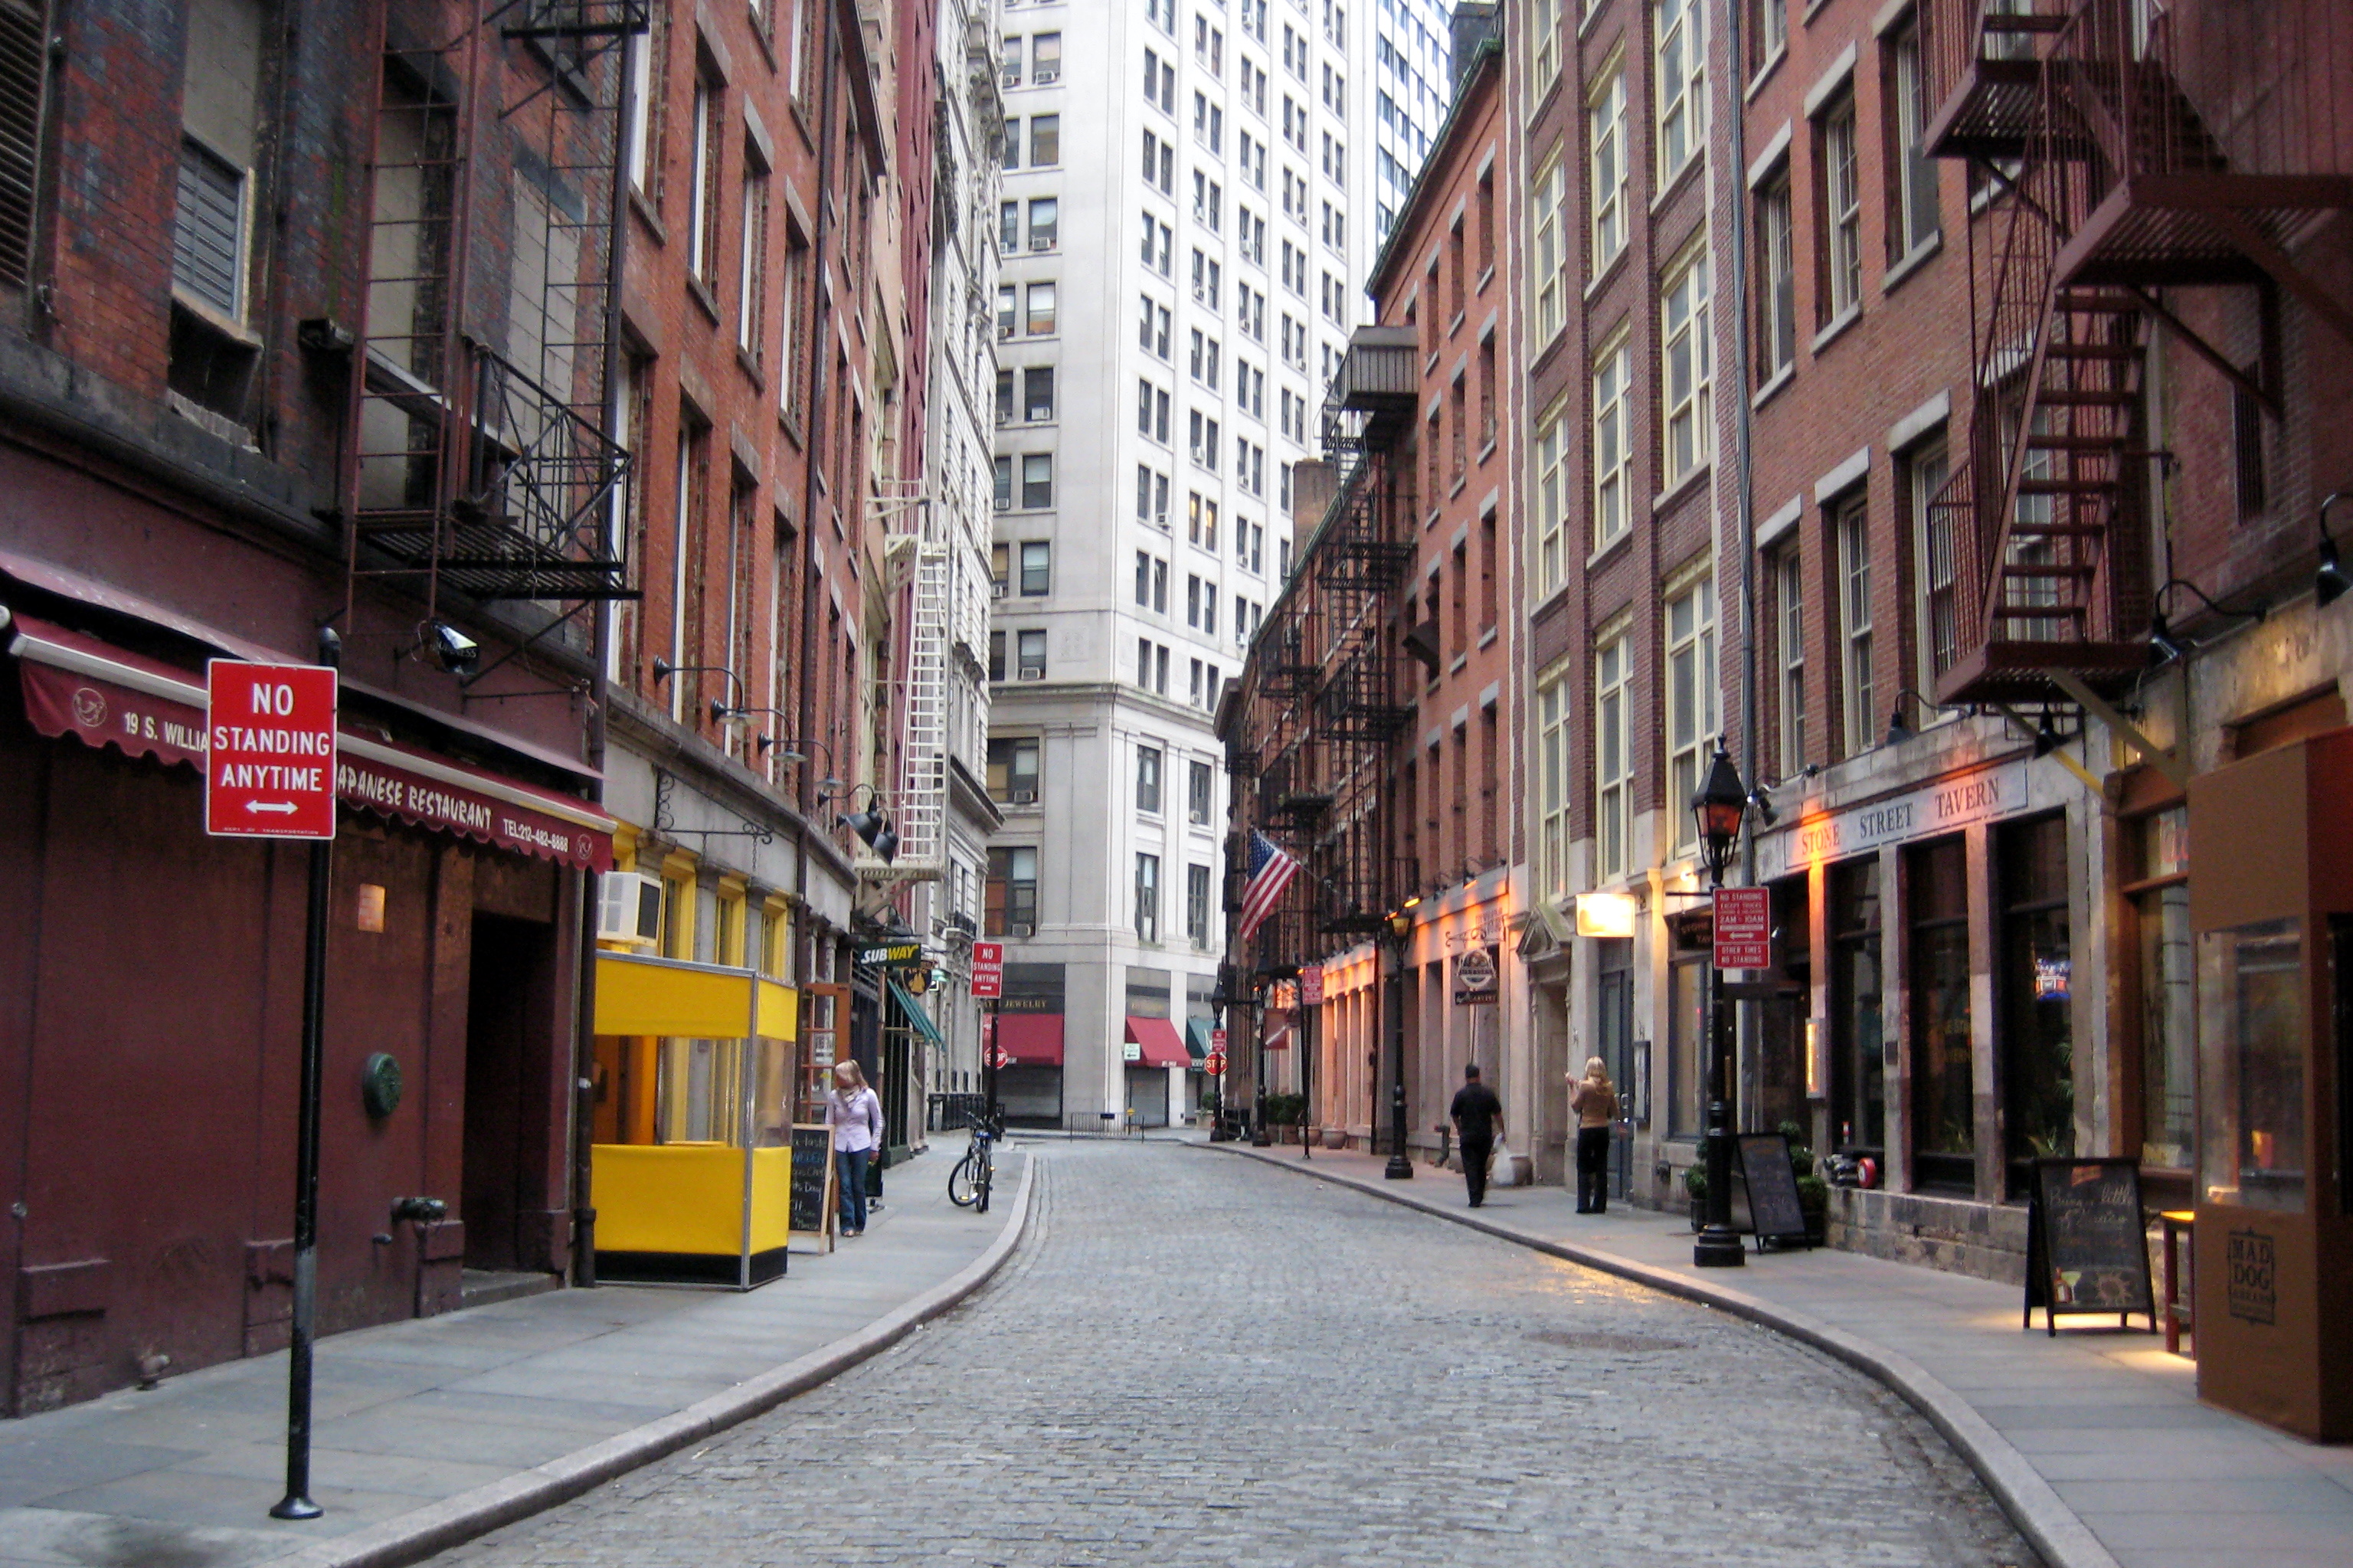 NYC - Stone Street | Flickr - Photo Sharing!